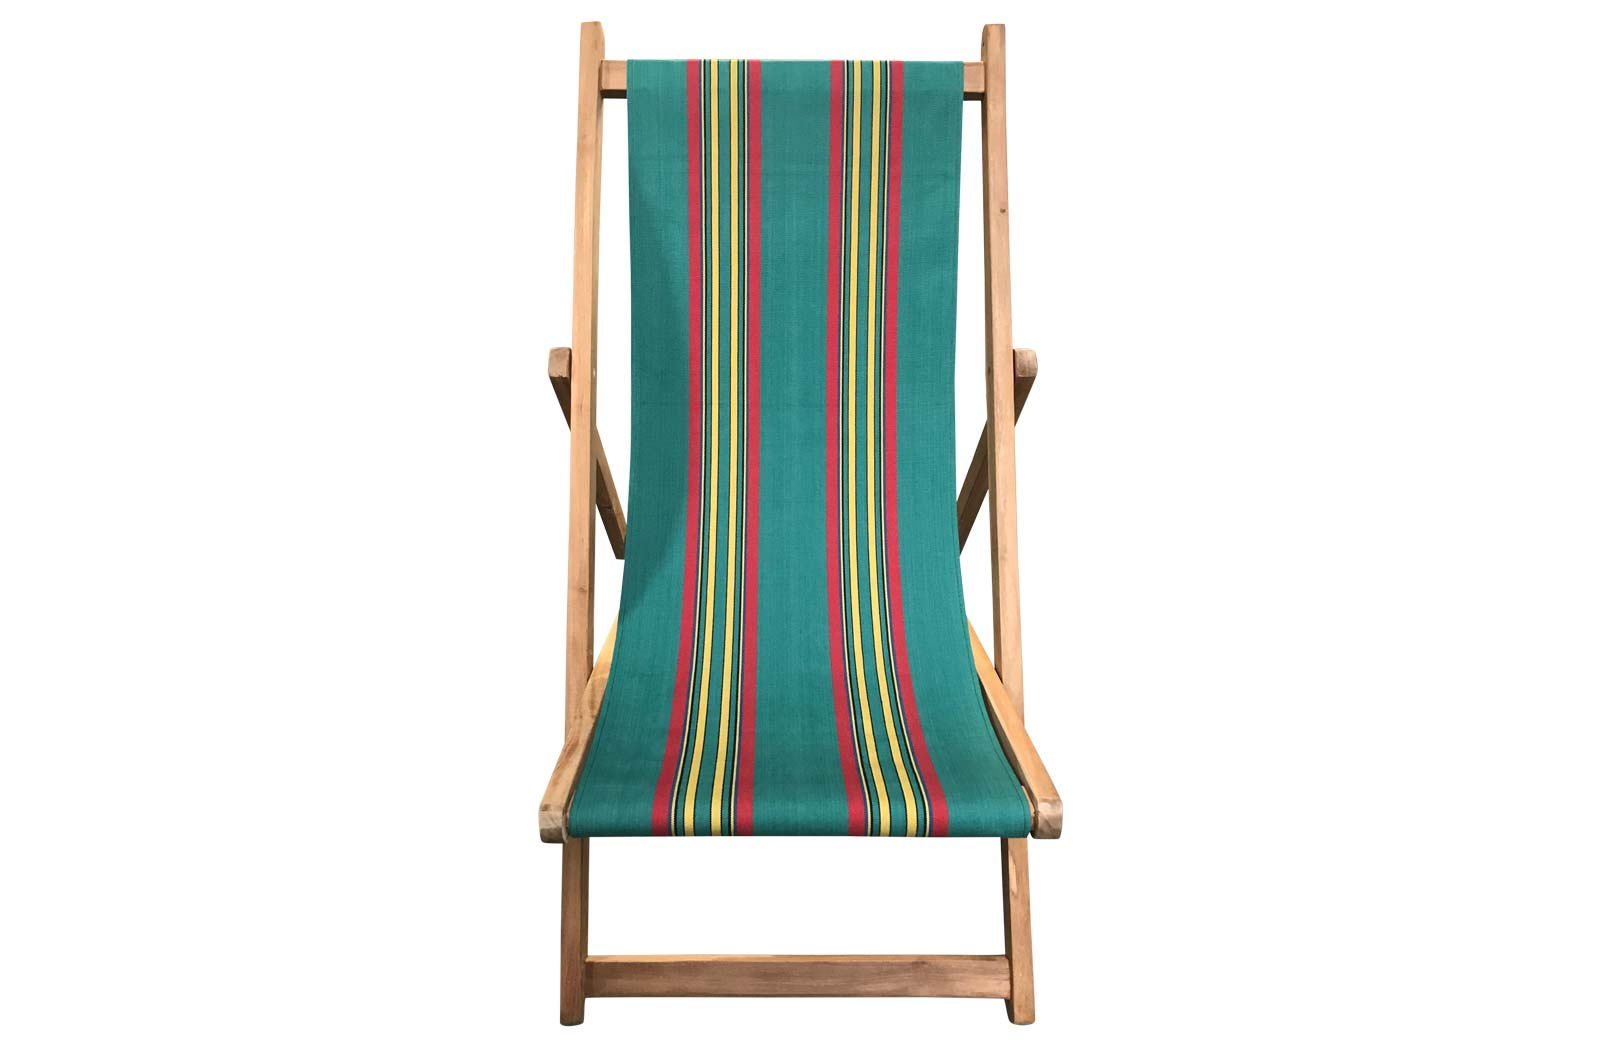 Jade green, red, yellow - Deckchairs | Buy Folding Wooden Deck Chairs